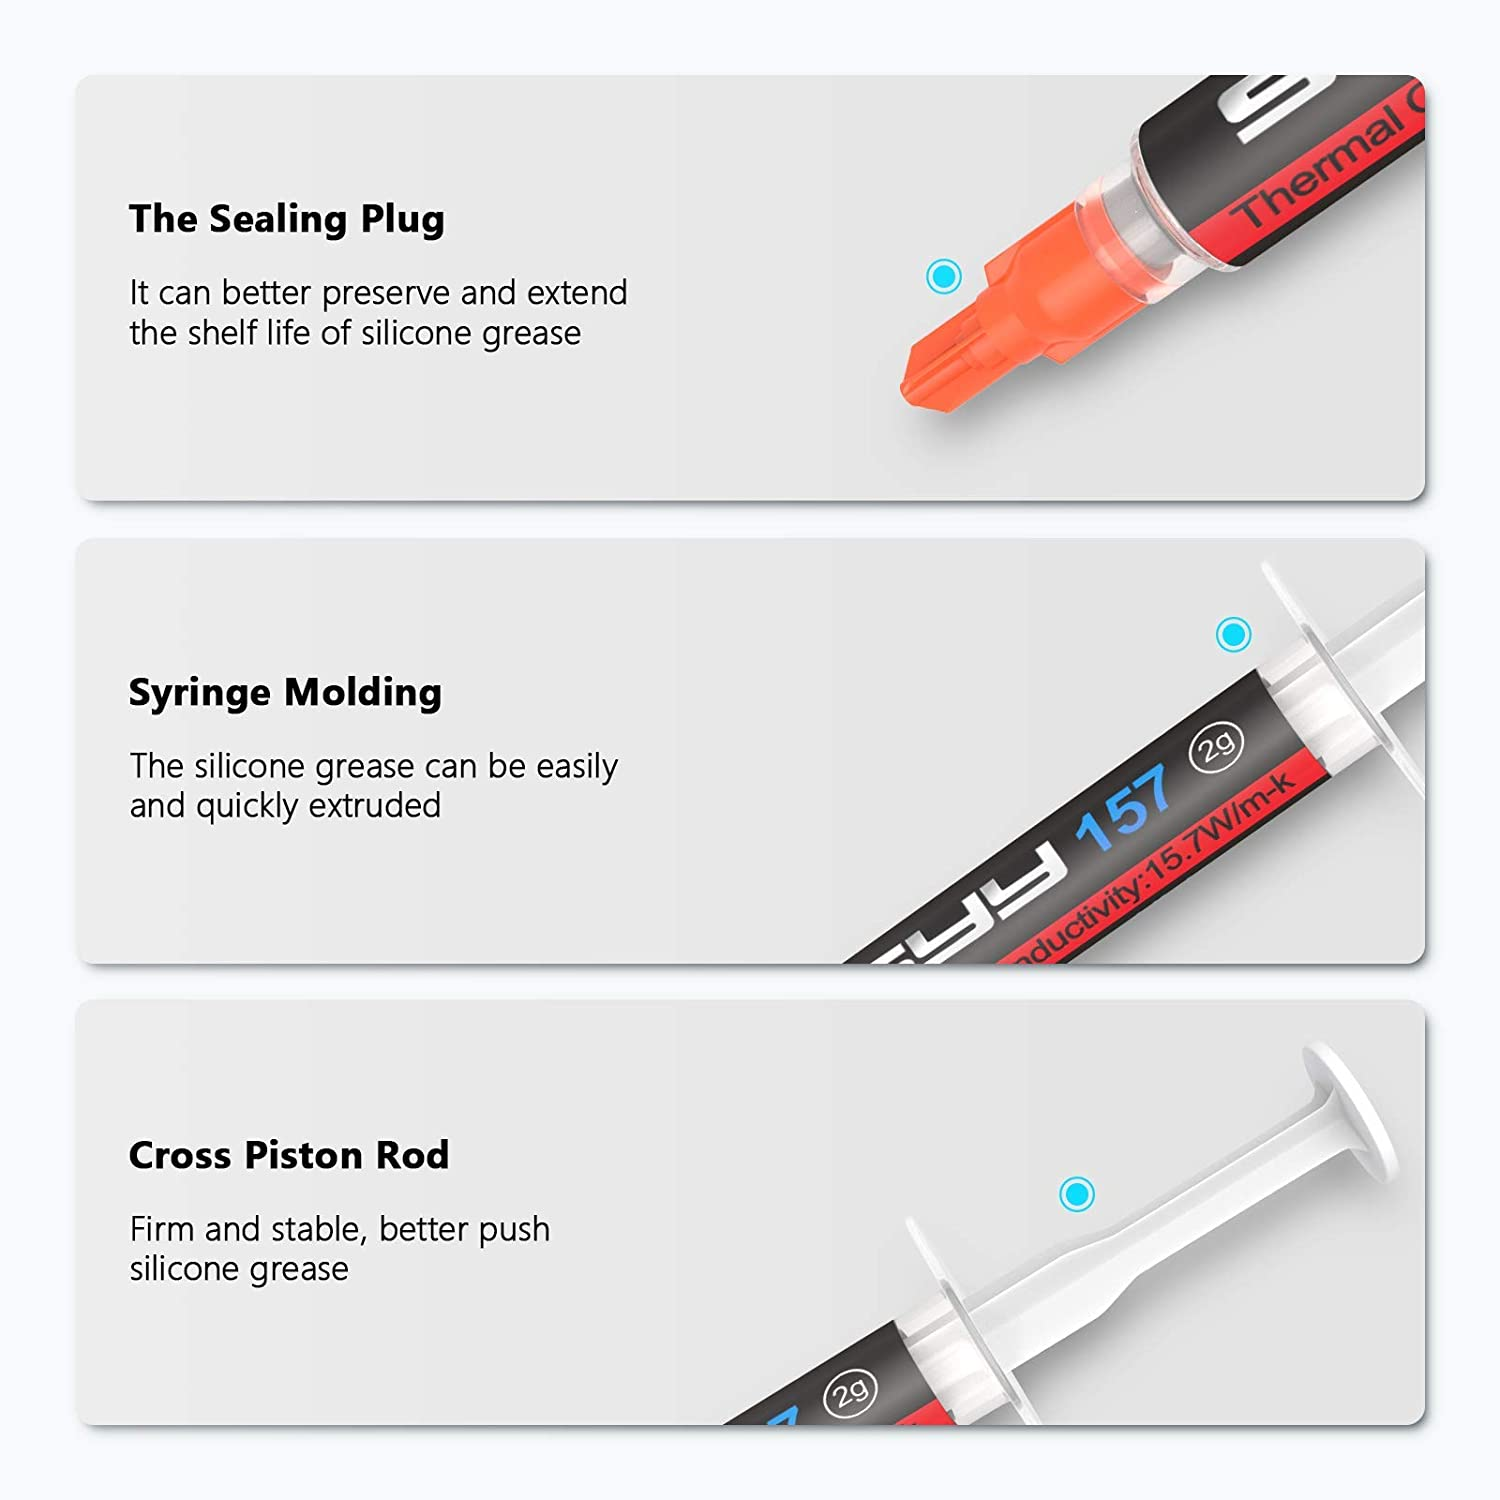 Thermal Paste, SYY 2 Grams CPU Paste Thermal Compound Paste Heatsink for IC/Processor/CPU/All Coolers, 15.7W/m.k Carbon Based High Performance, Thermal Interface Material, CPU Thermal Paste